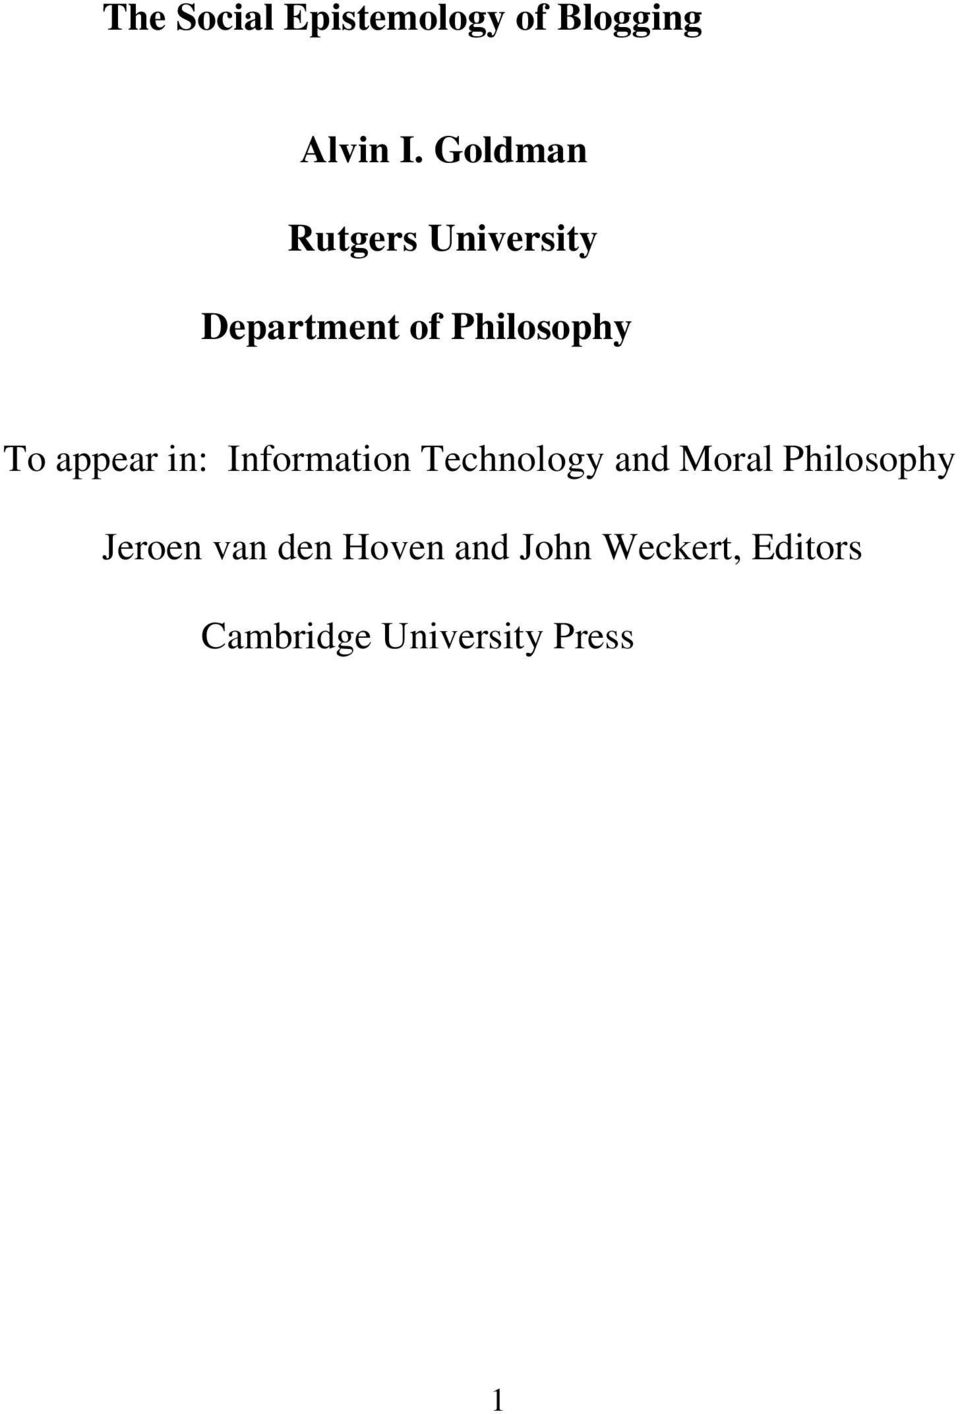 appear in: Information Technology and Moral Philosophy